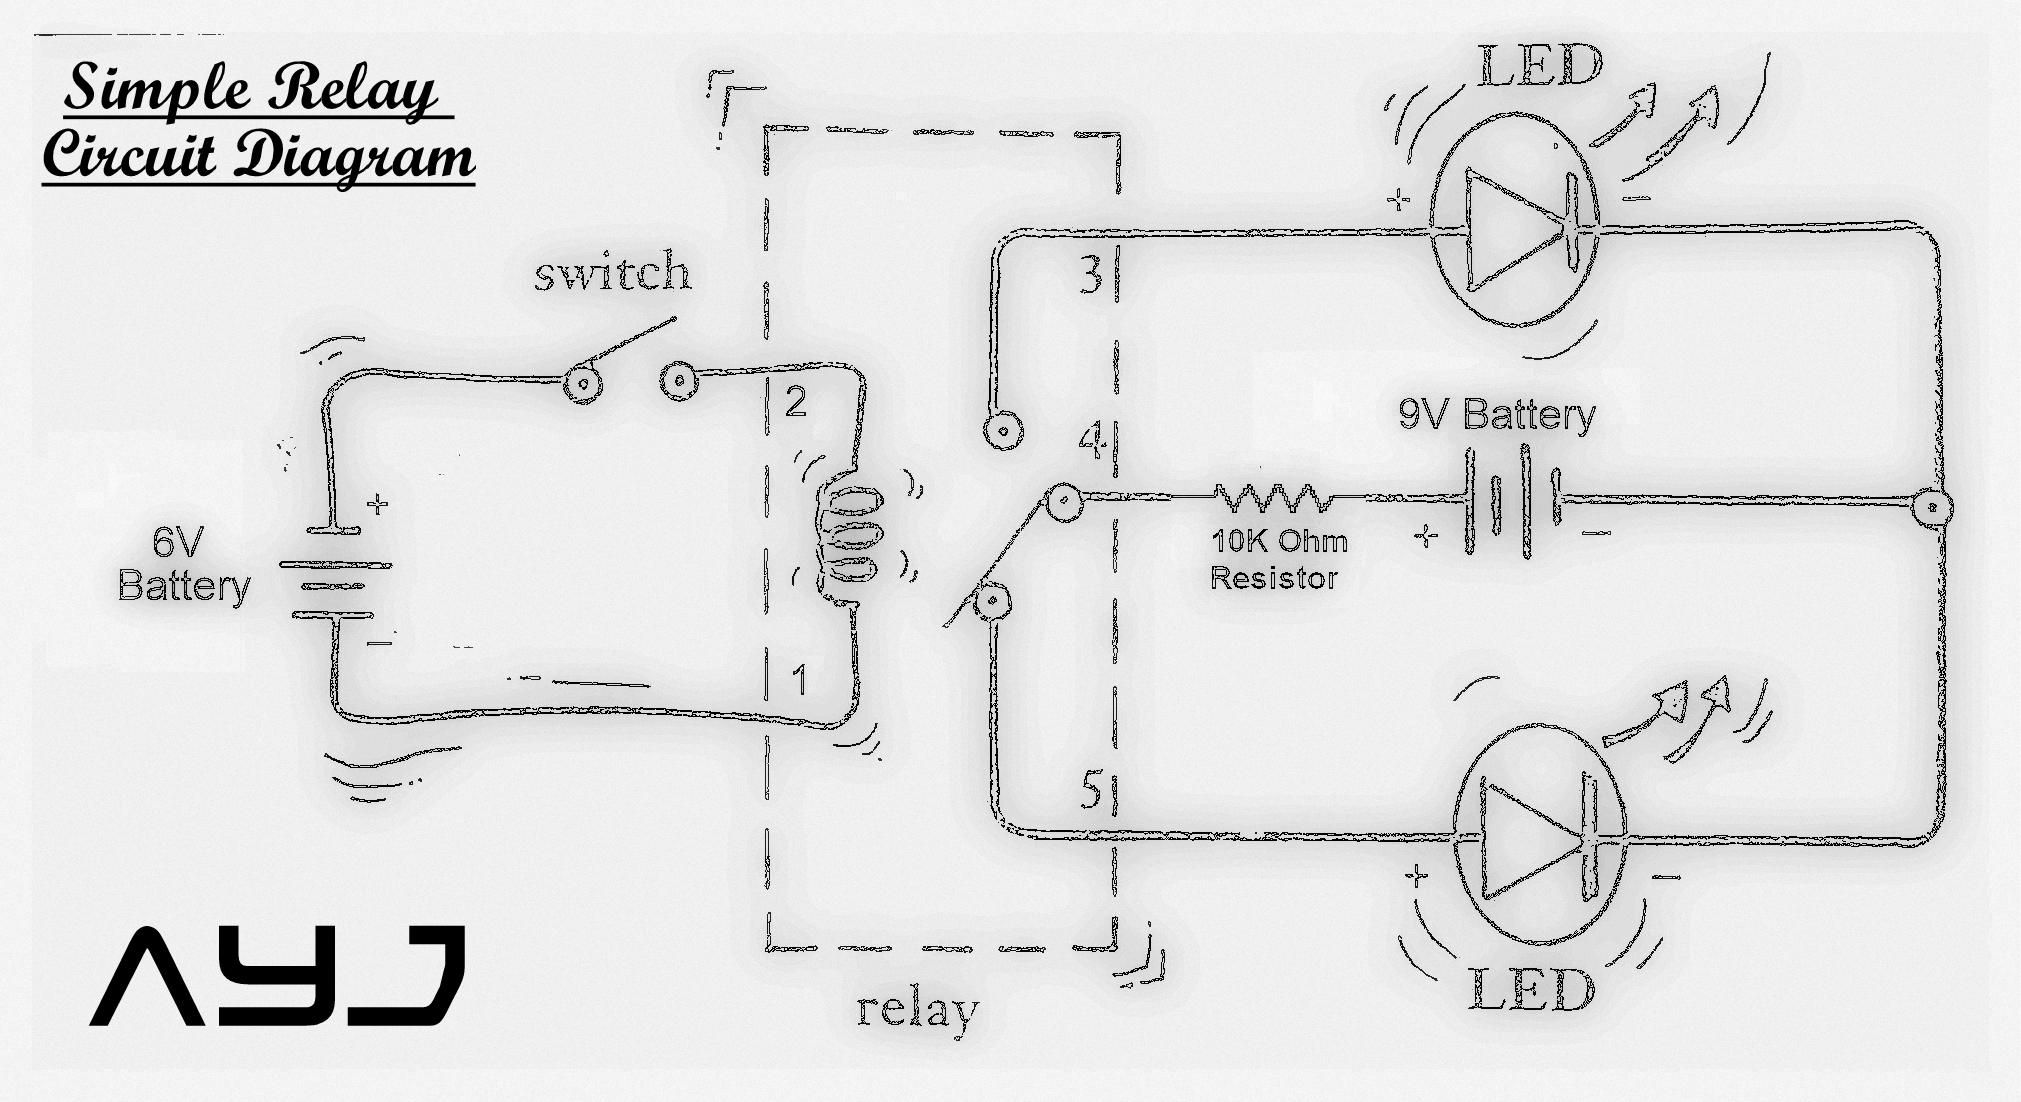 hight resolution of simple relay circuit circuit diagram electronics and electrical simple relay circuit circuit diagram